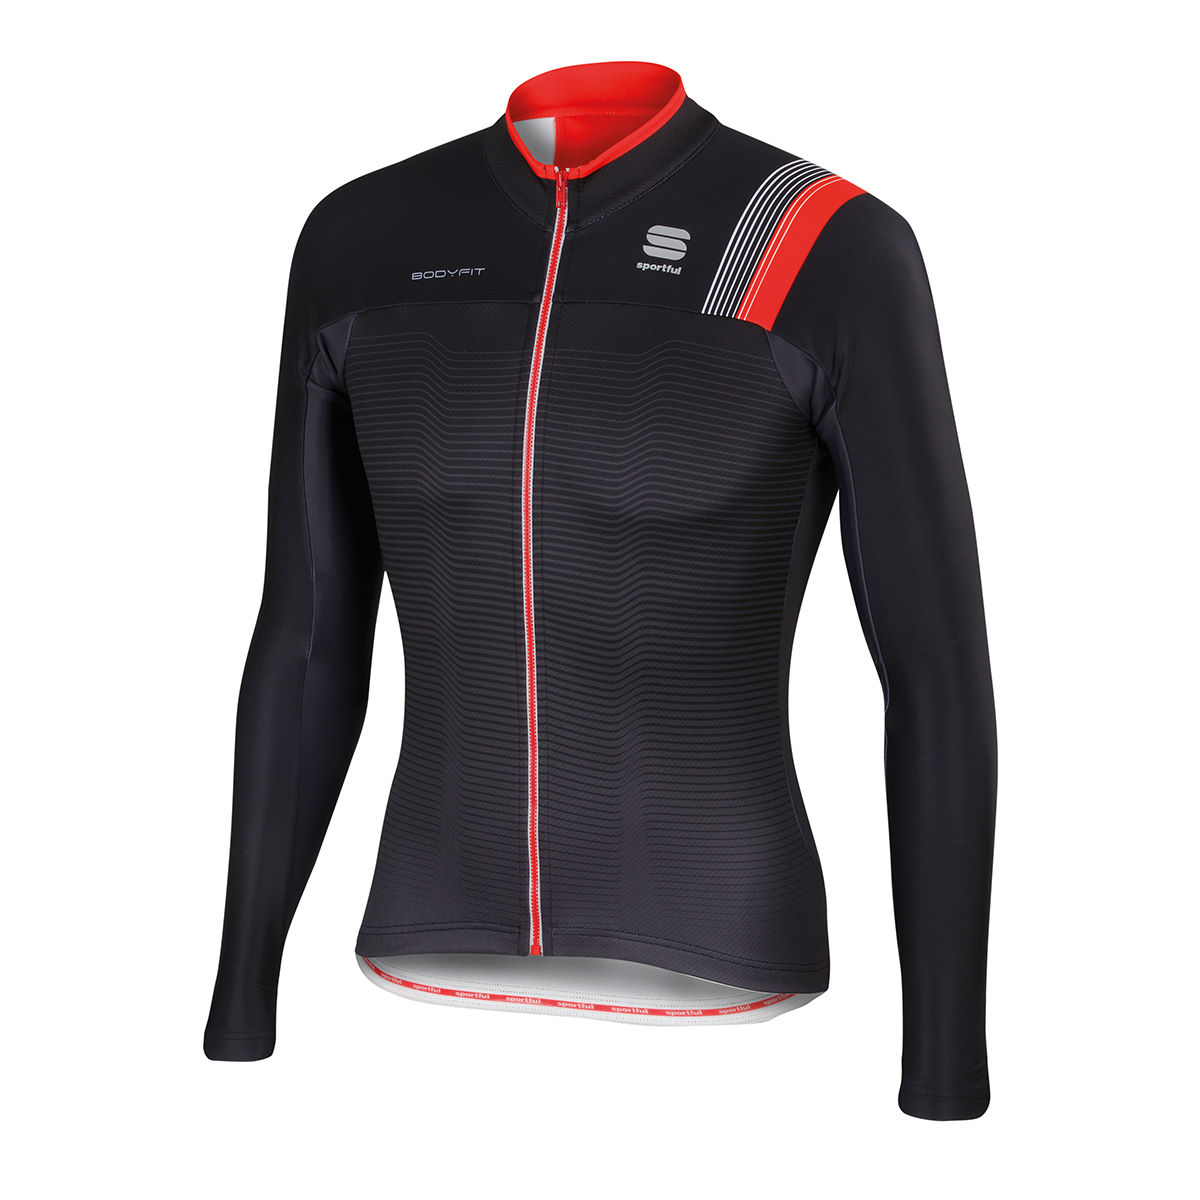 Maillot Sportful BodyFit Pro (thermique, AH16) - XXL Black/Anthracite/Red Maillots vélo à manches longues